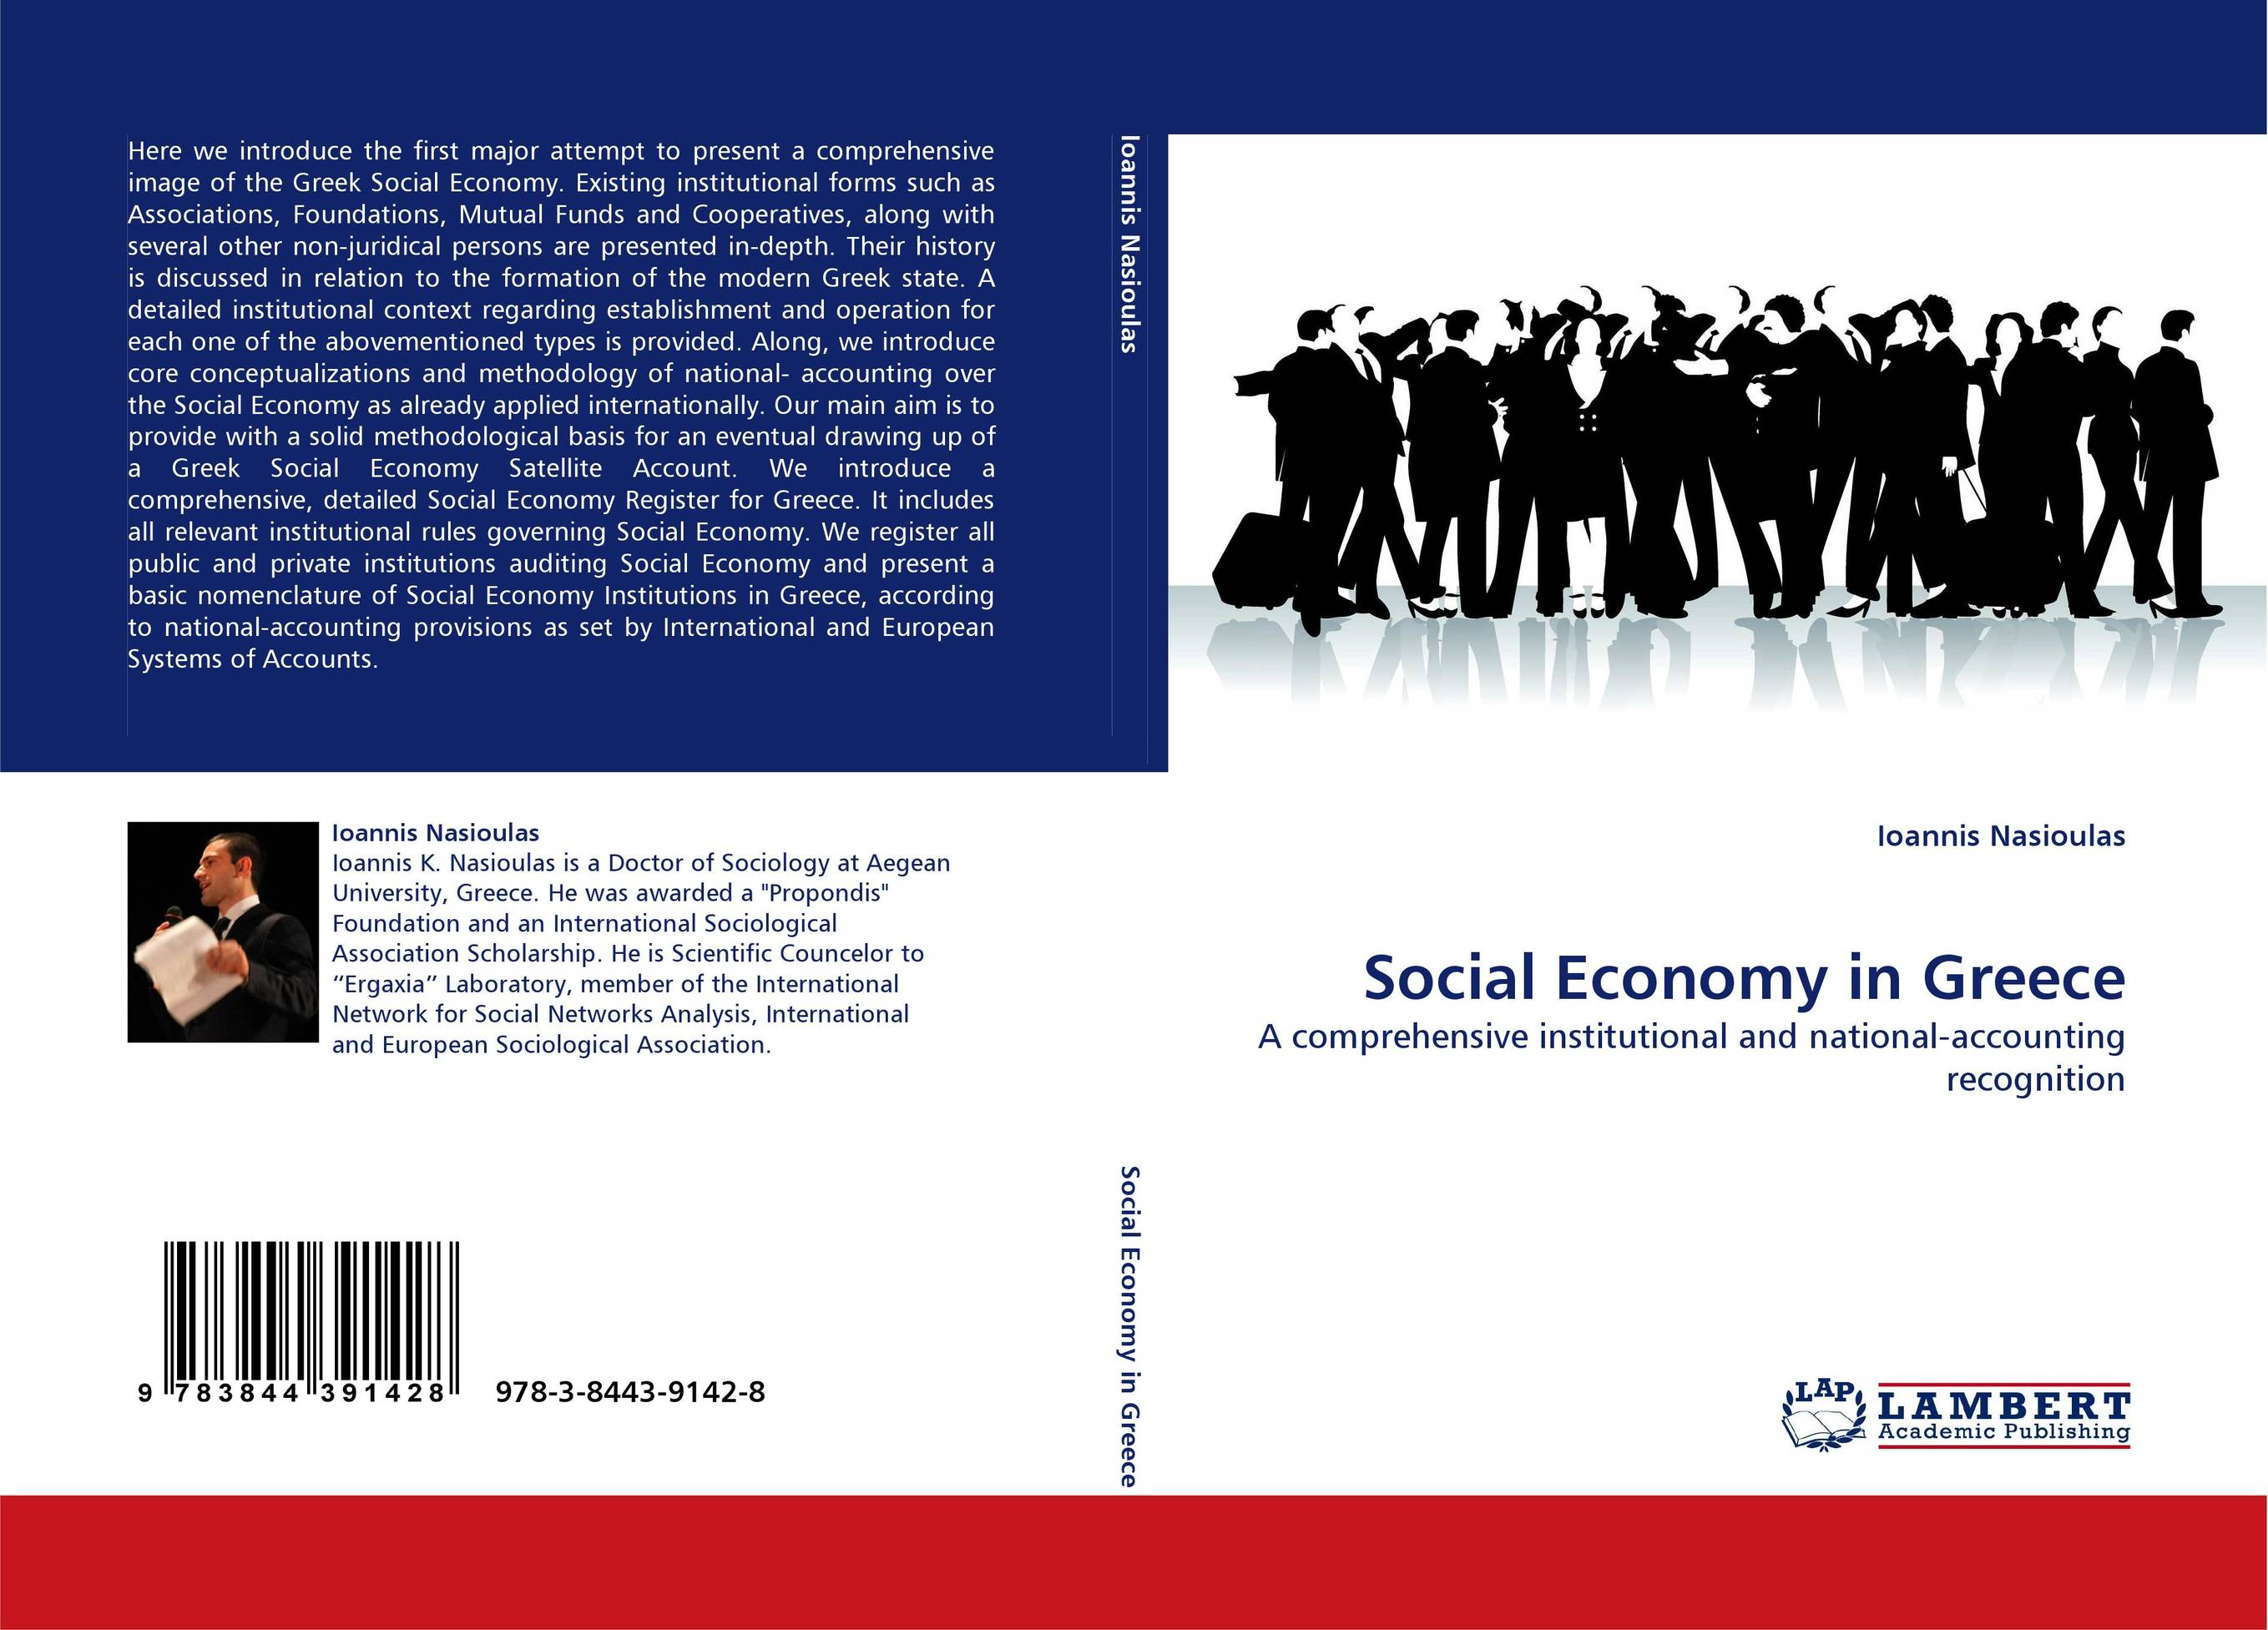 accuonting economics social science Social science covers a broad range of disciplines demography and social statistics, methods and computing demography is the study of populations and population changes and trends, using resources such as statistics of births, deaths and disease.